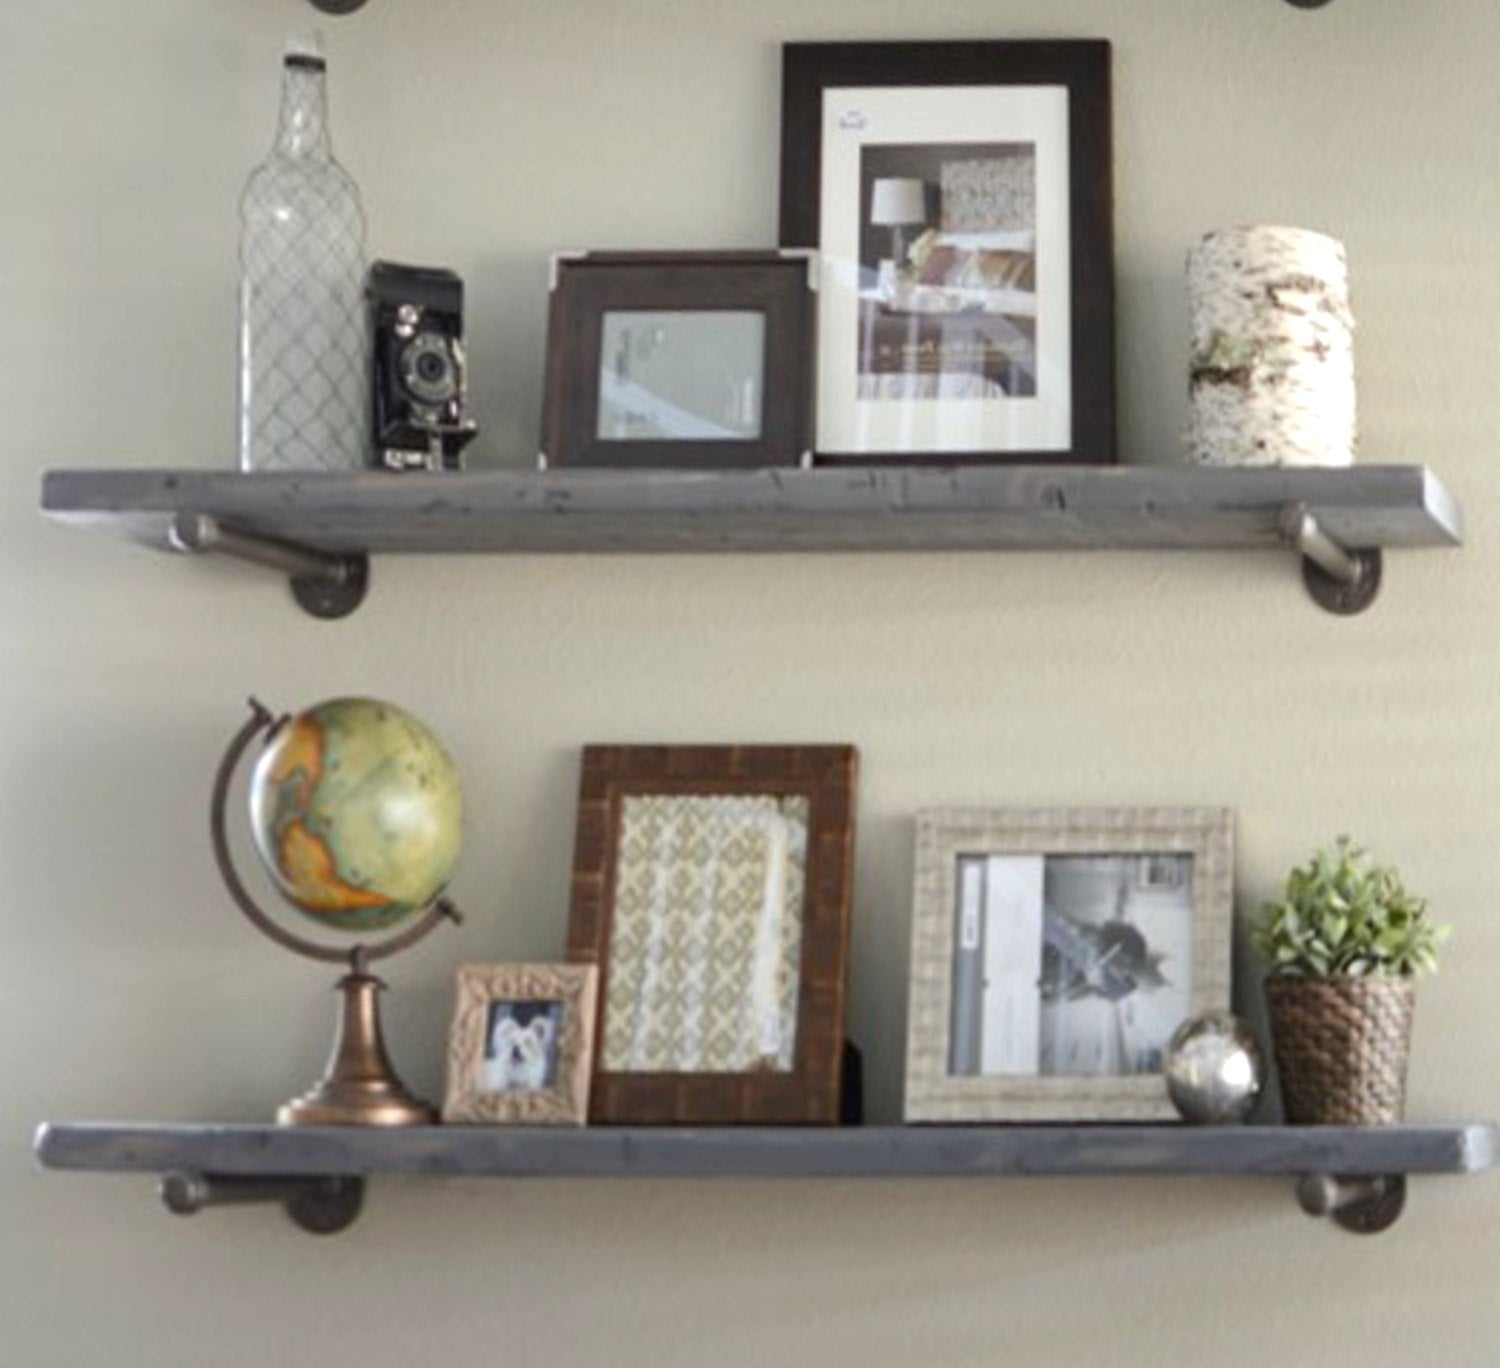 depth industrial gray wash floating shelf graywash etsy fullxfull lanb shelves grey round pins narrow shoe cabinet staggered shelving unit low corner bookshelf modern wood